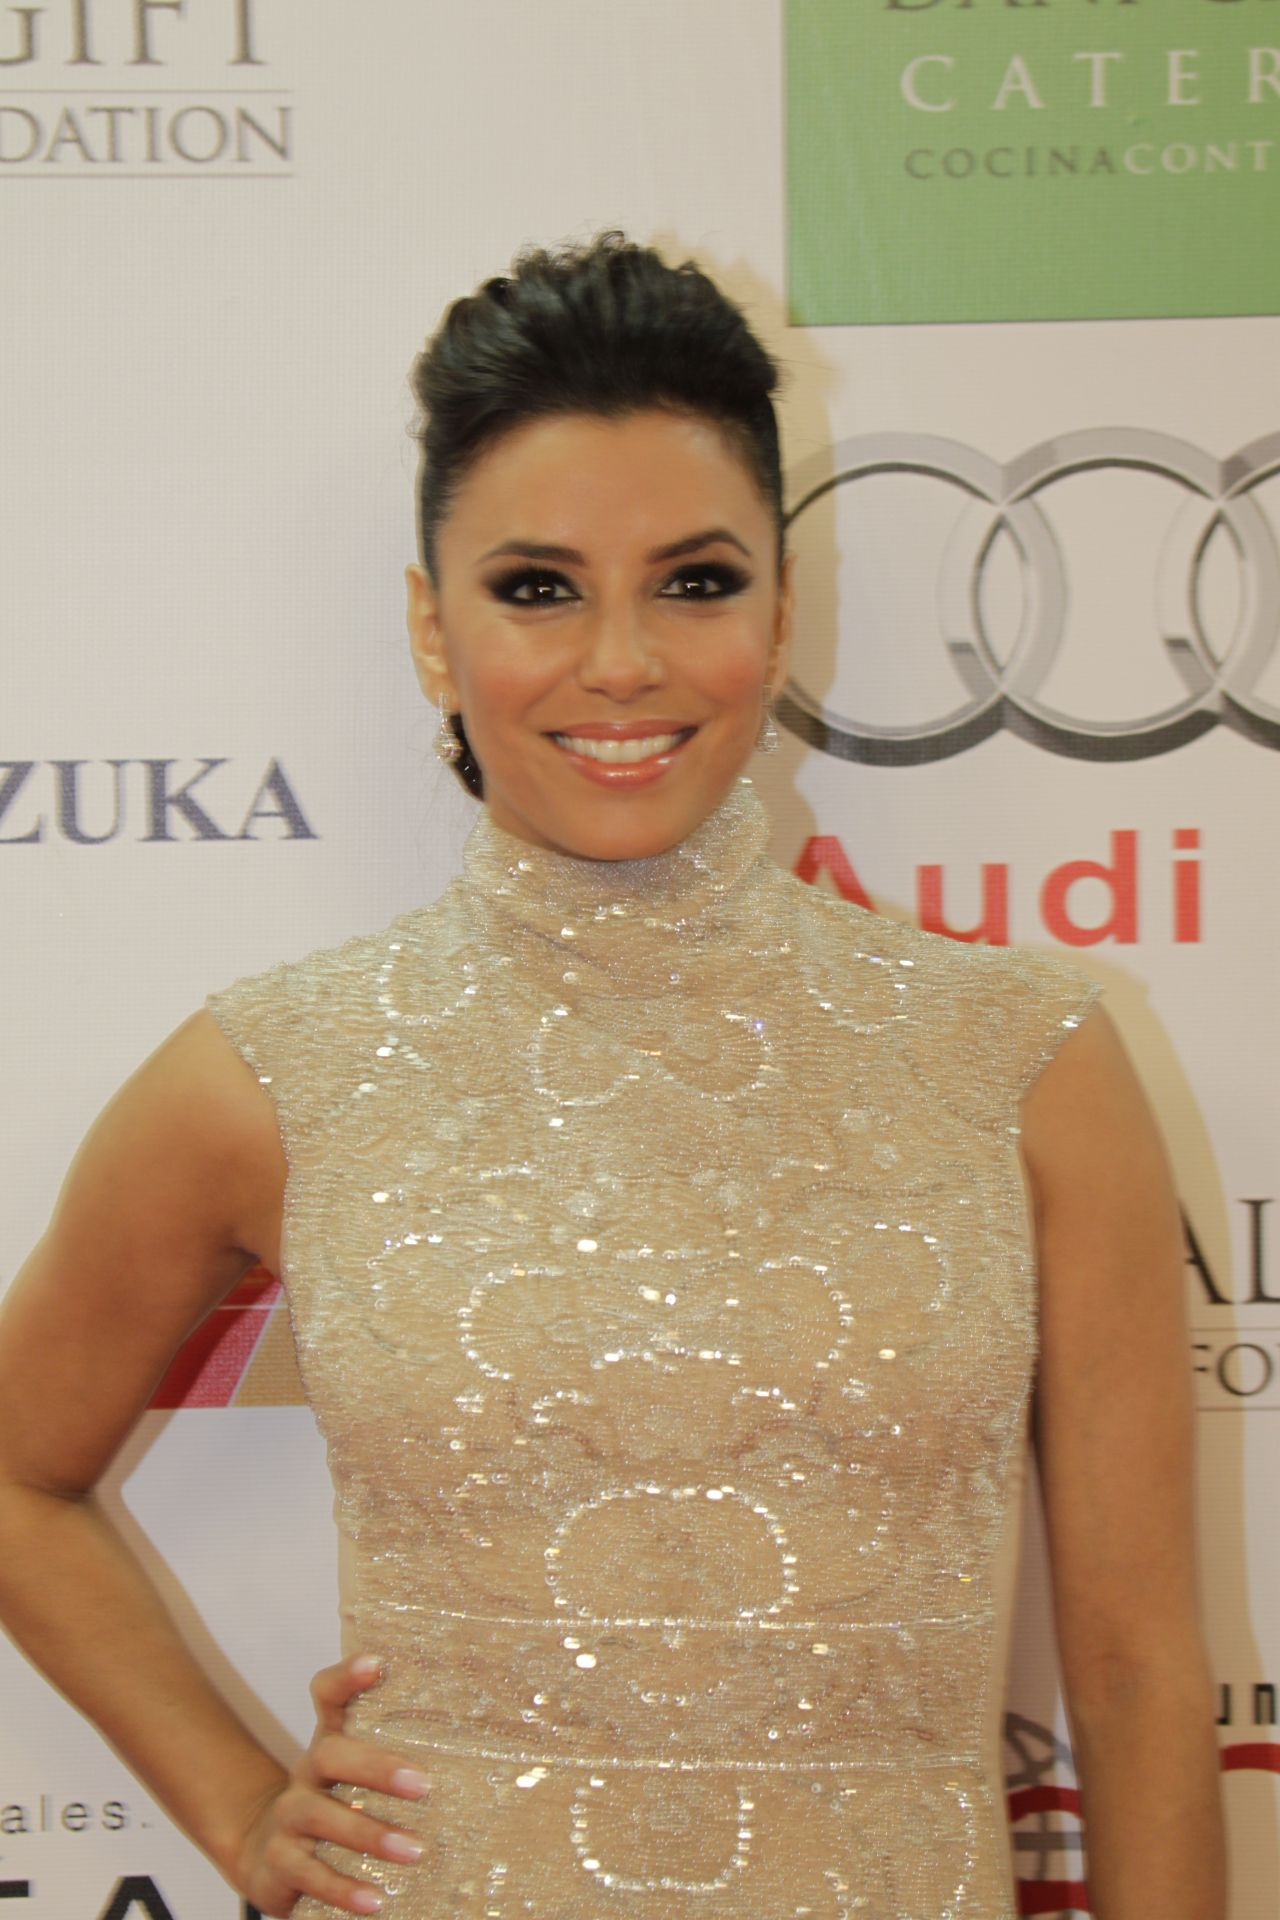 Eva Longoria Red Carpet Photos - Hosted the Global Gift Gala in Marbella for Charity